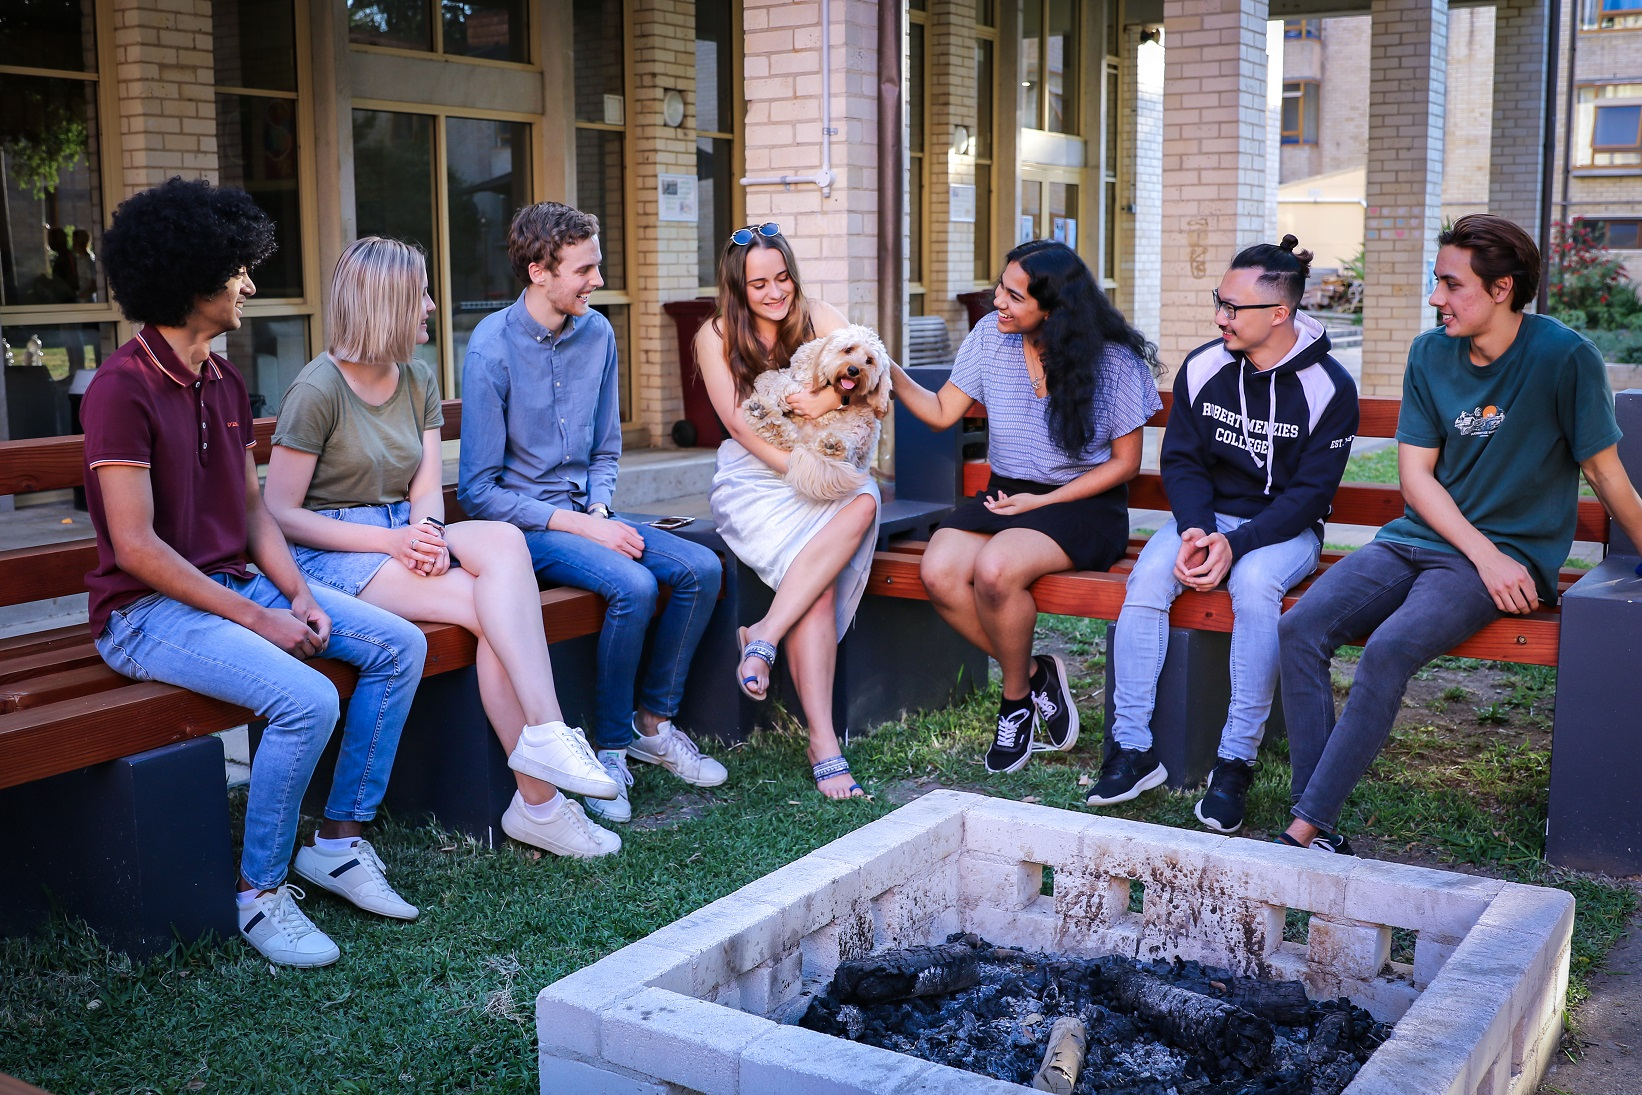 A group of Robert Menzies College university student residents sitting around a fire pit with a dog